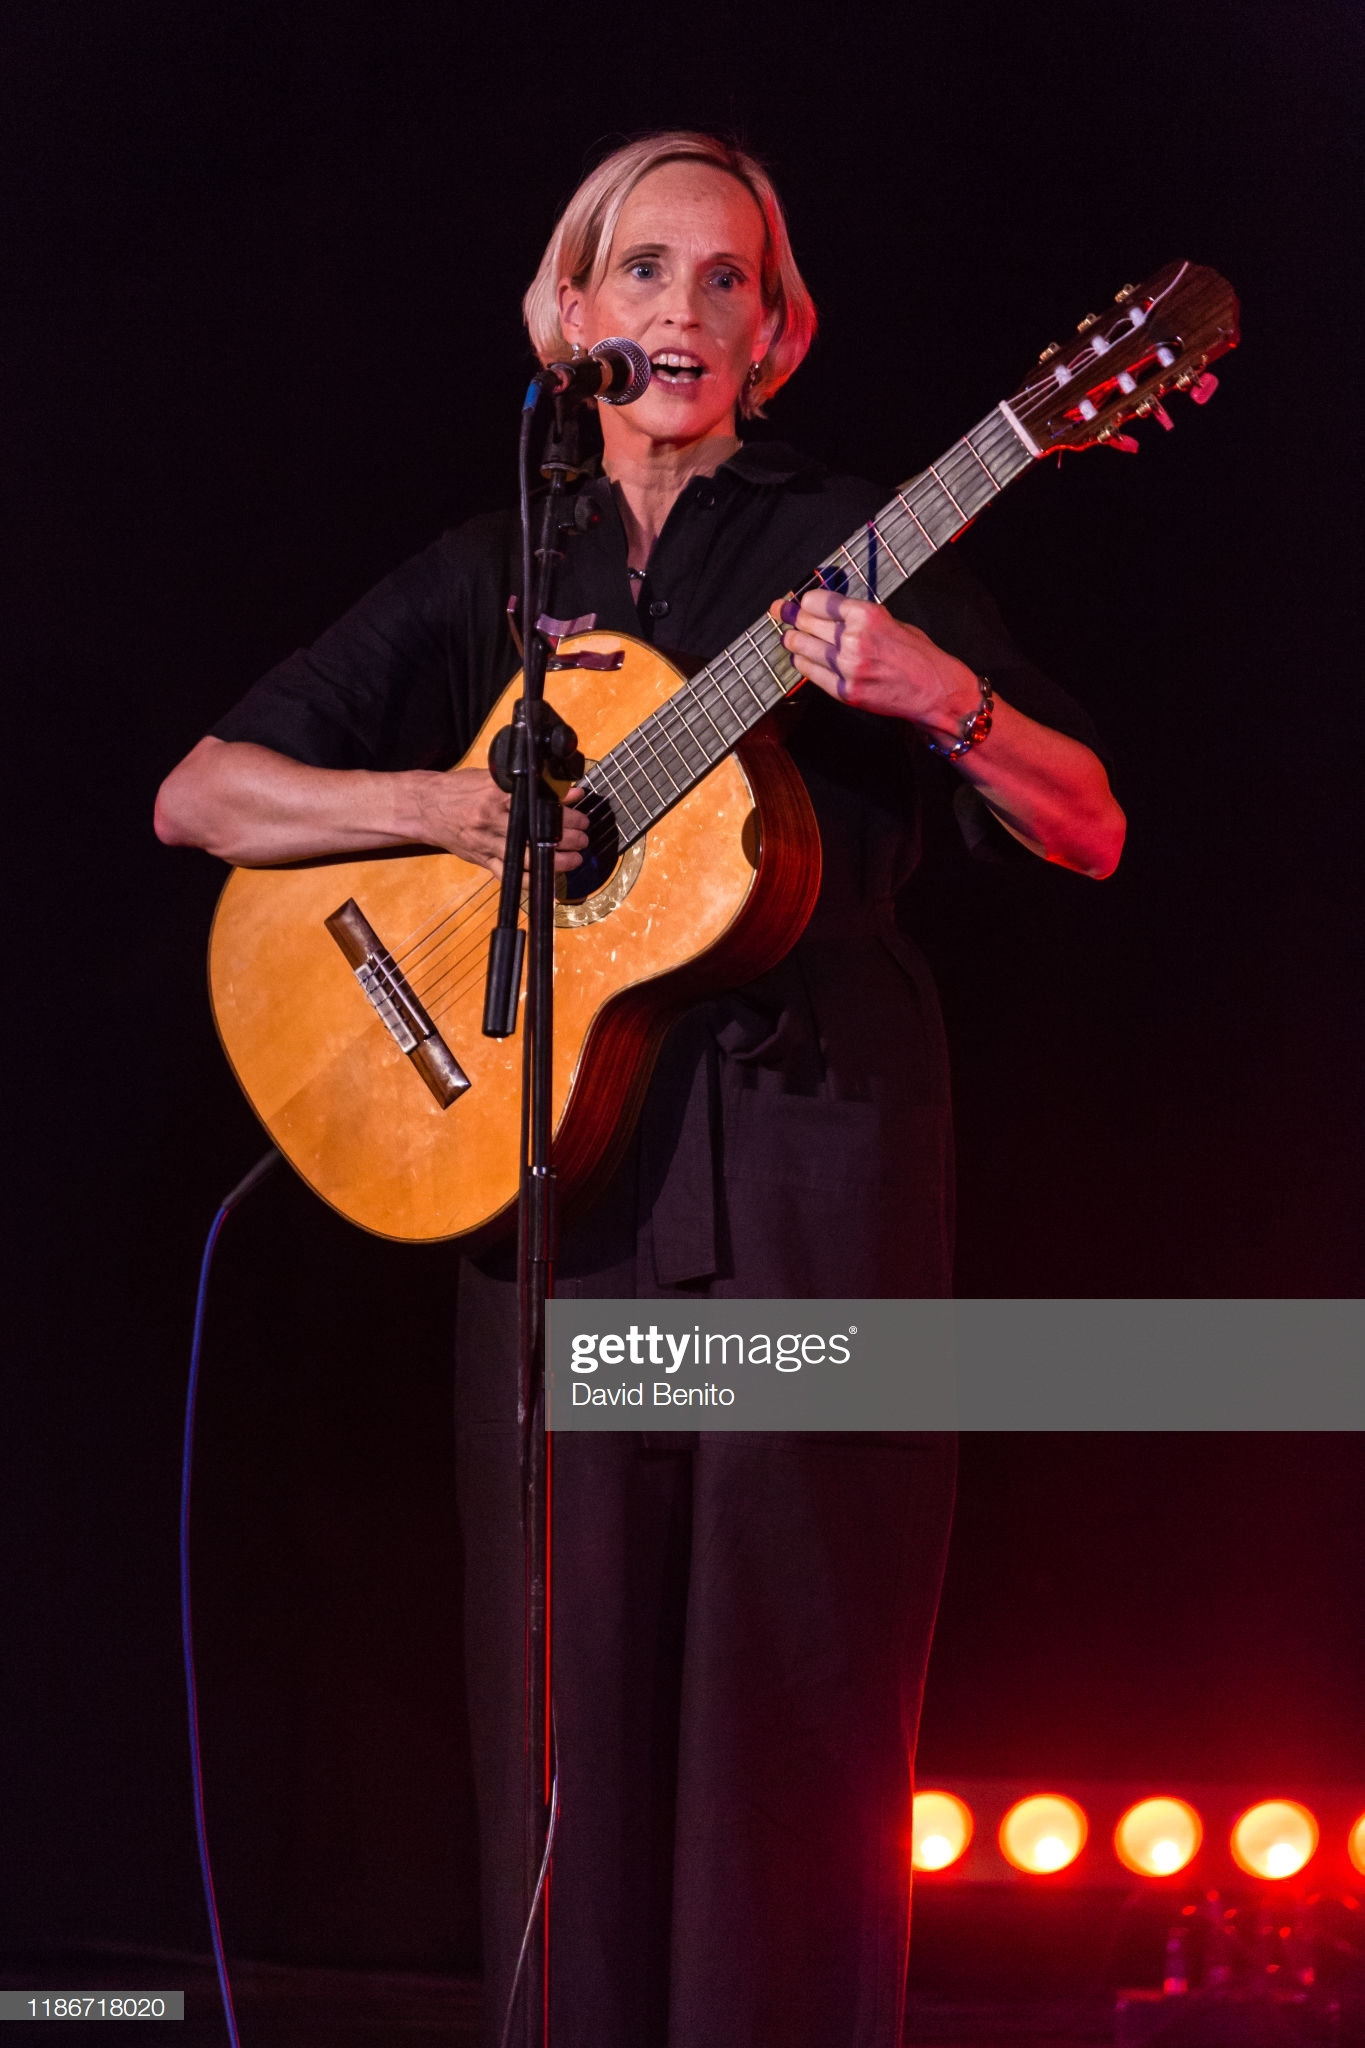 gettyimages-1186718020-2048x2048